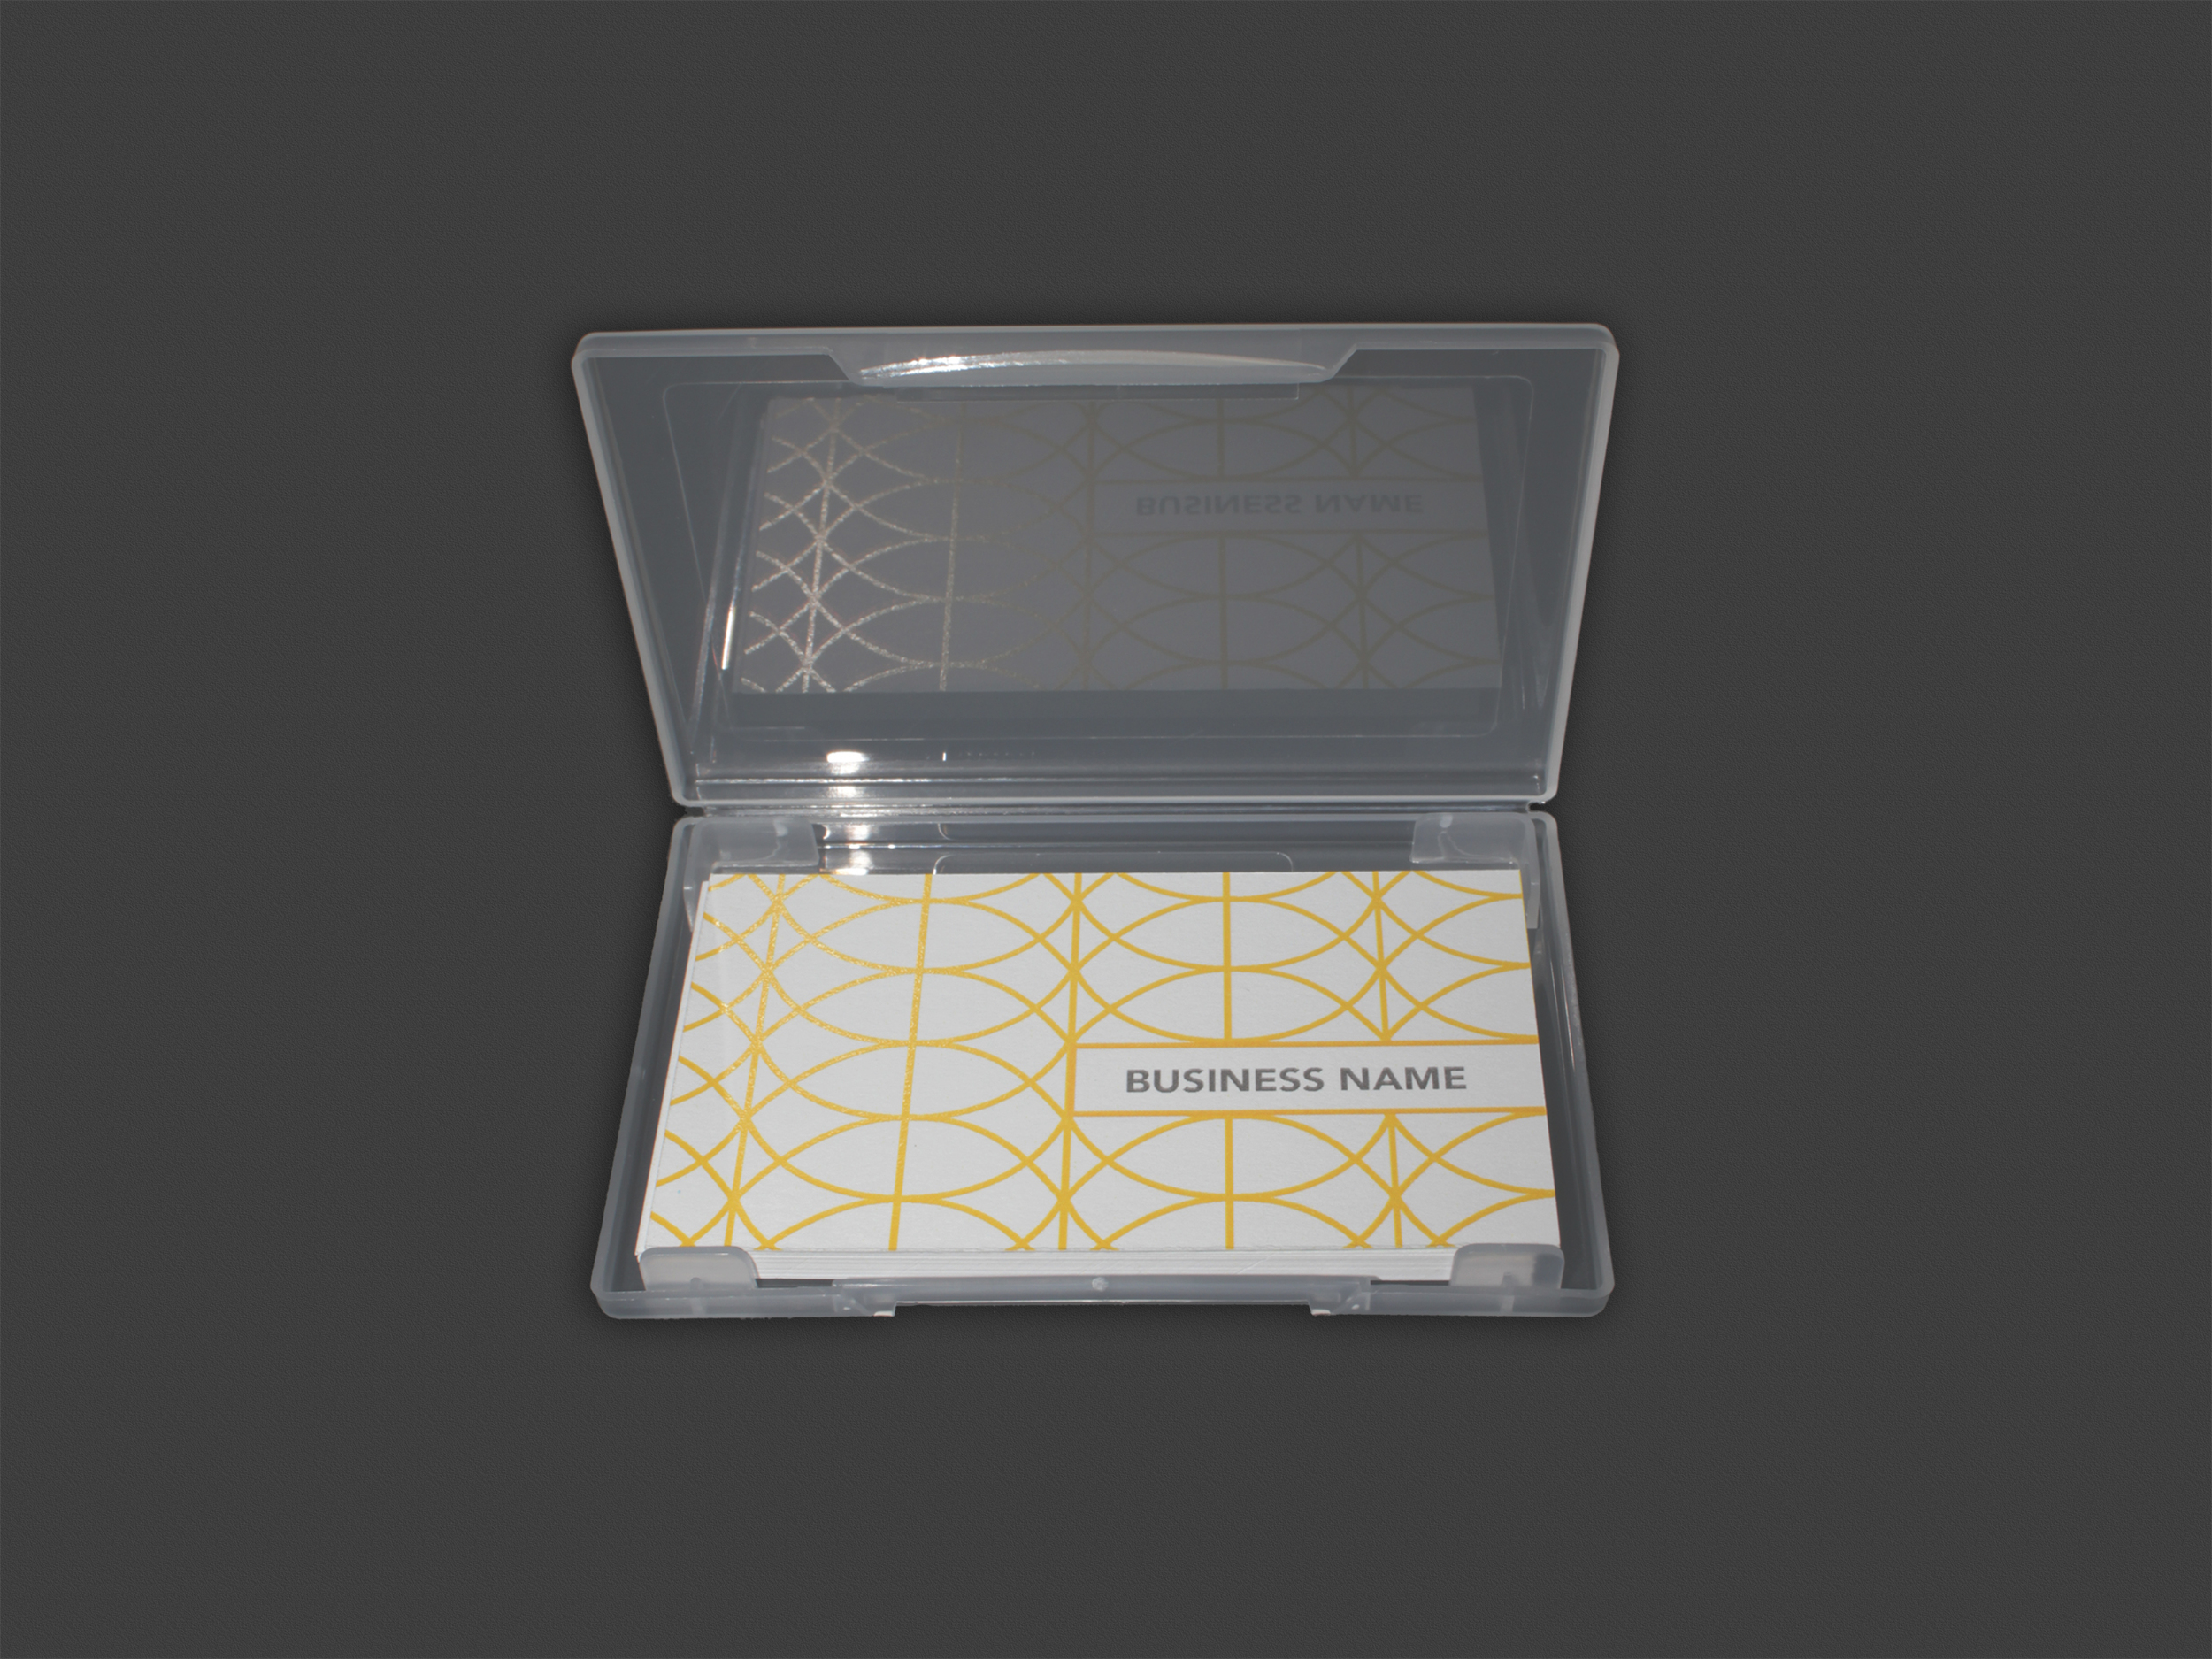 See Business Printing Accessories